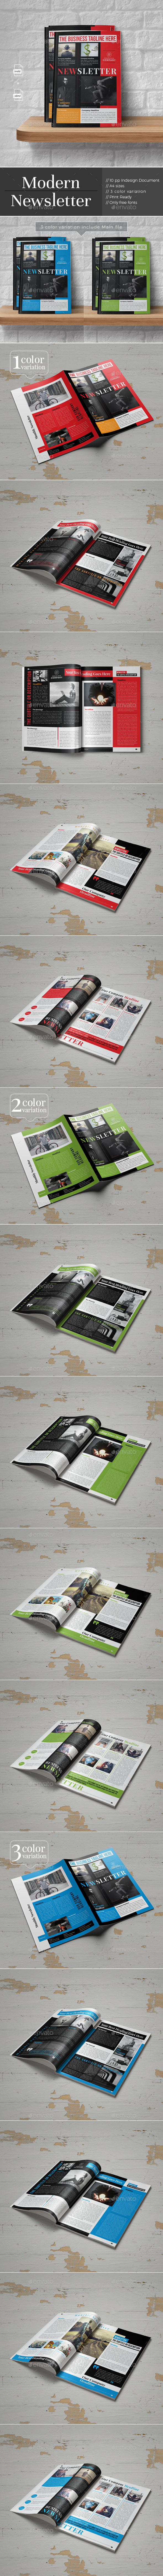 Modern Newsletter Template - Newsletters Print Templates